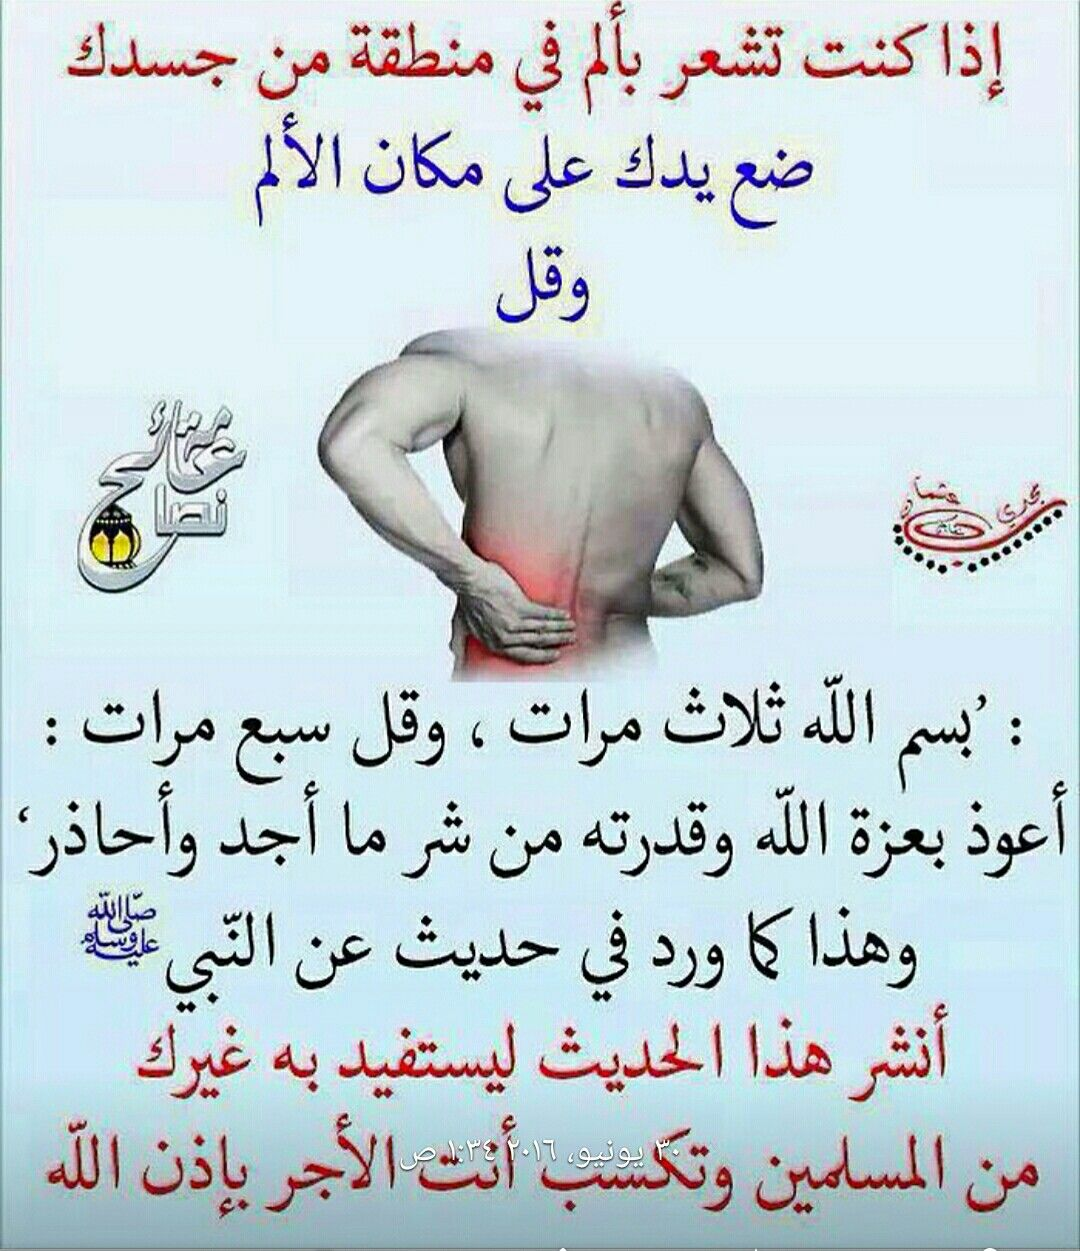 Pin By Maissam On مدونة اسلاميه Islamic Inspirational Quotes Islam Beliefs Quran Quotes Love